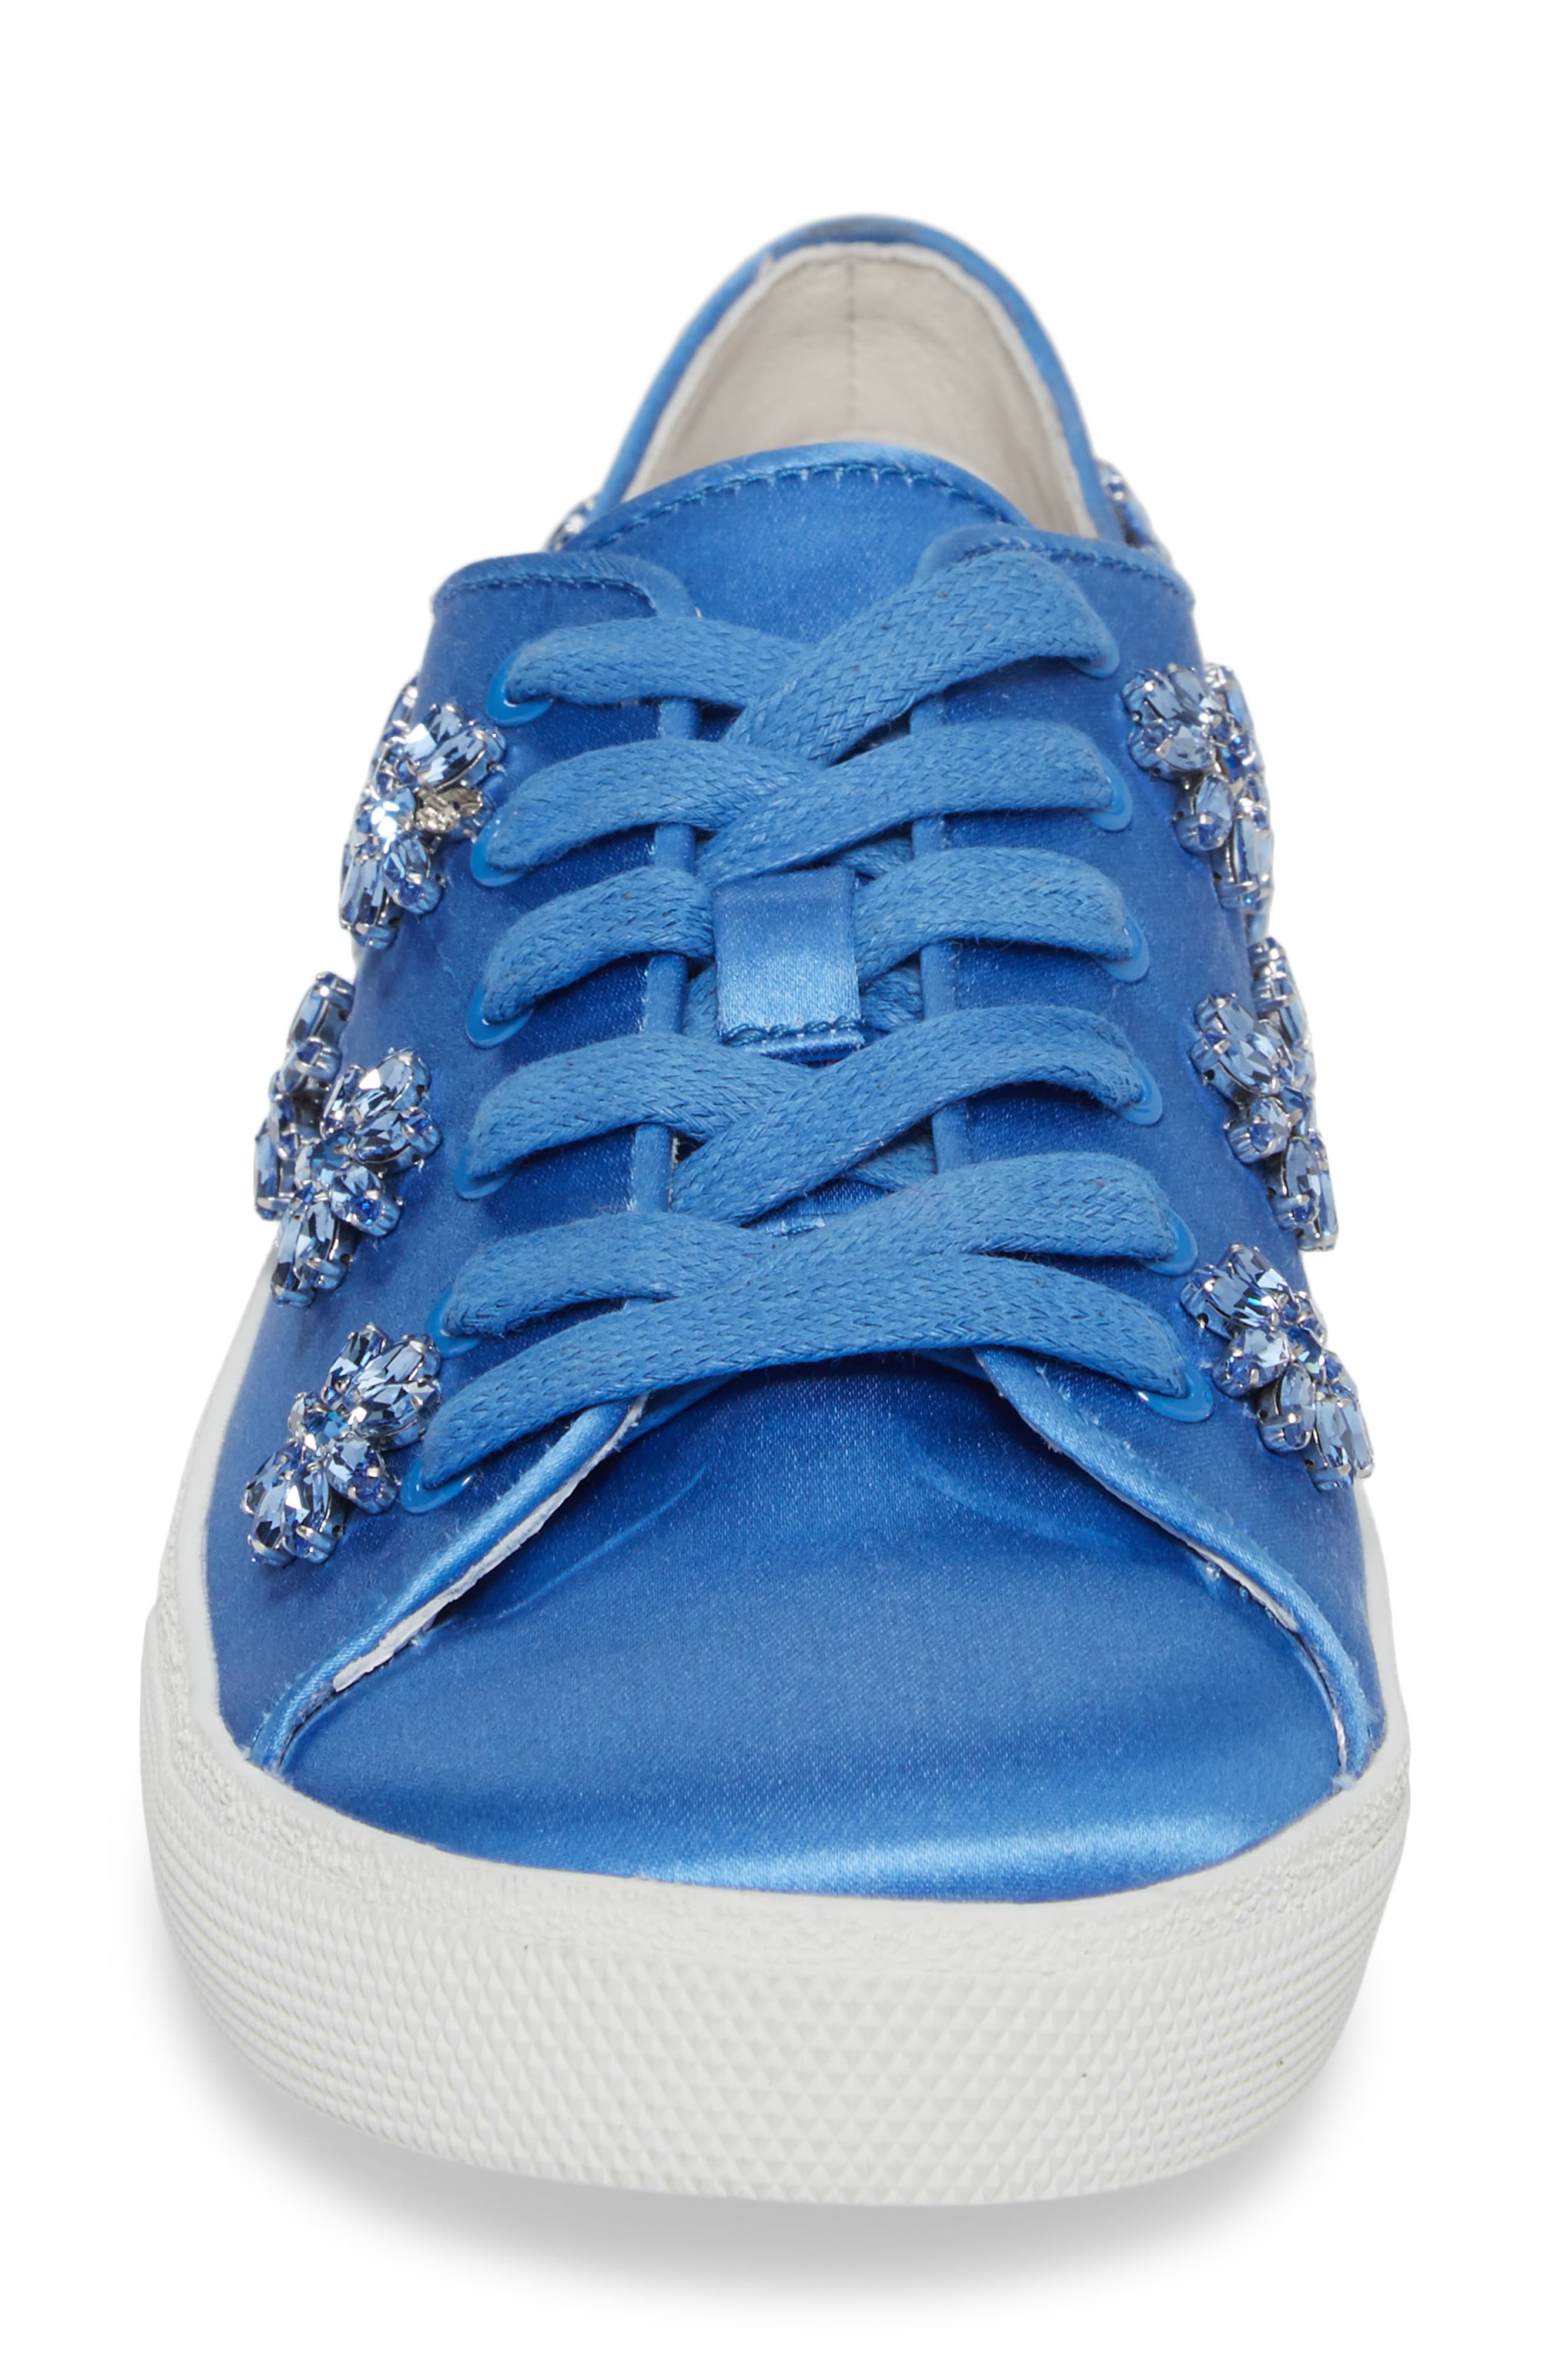 Cleo Crystal Embellished Sneaker,                             Alternate thumbnail 4, color,                             430